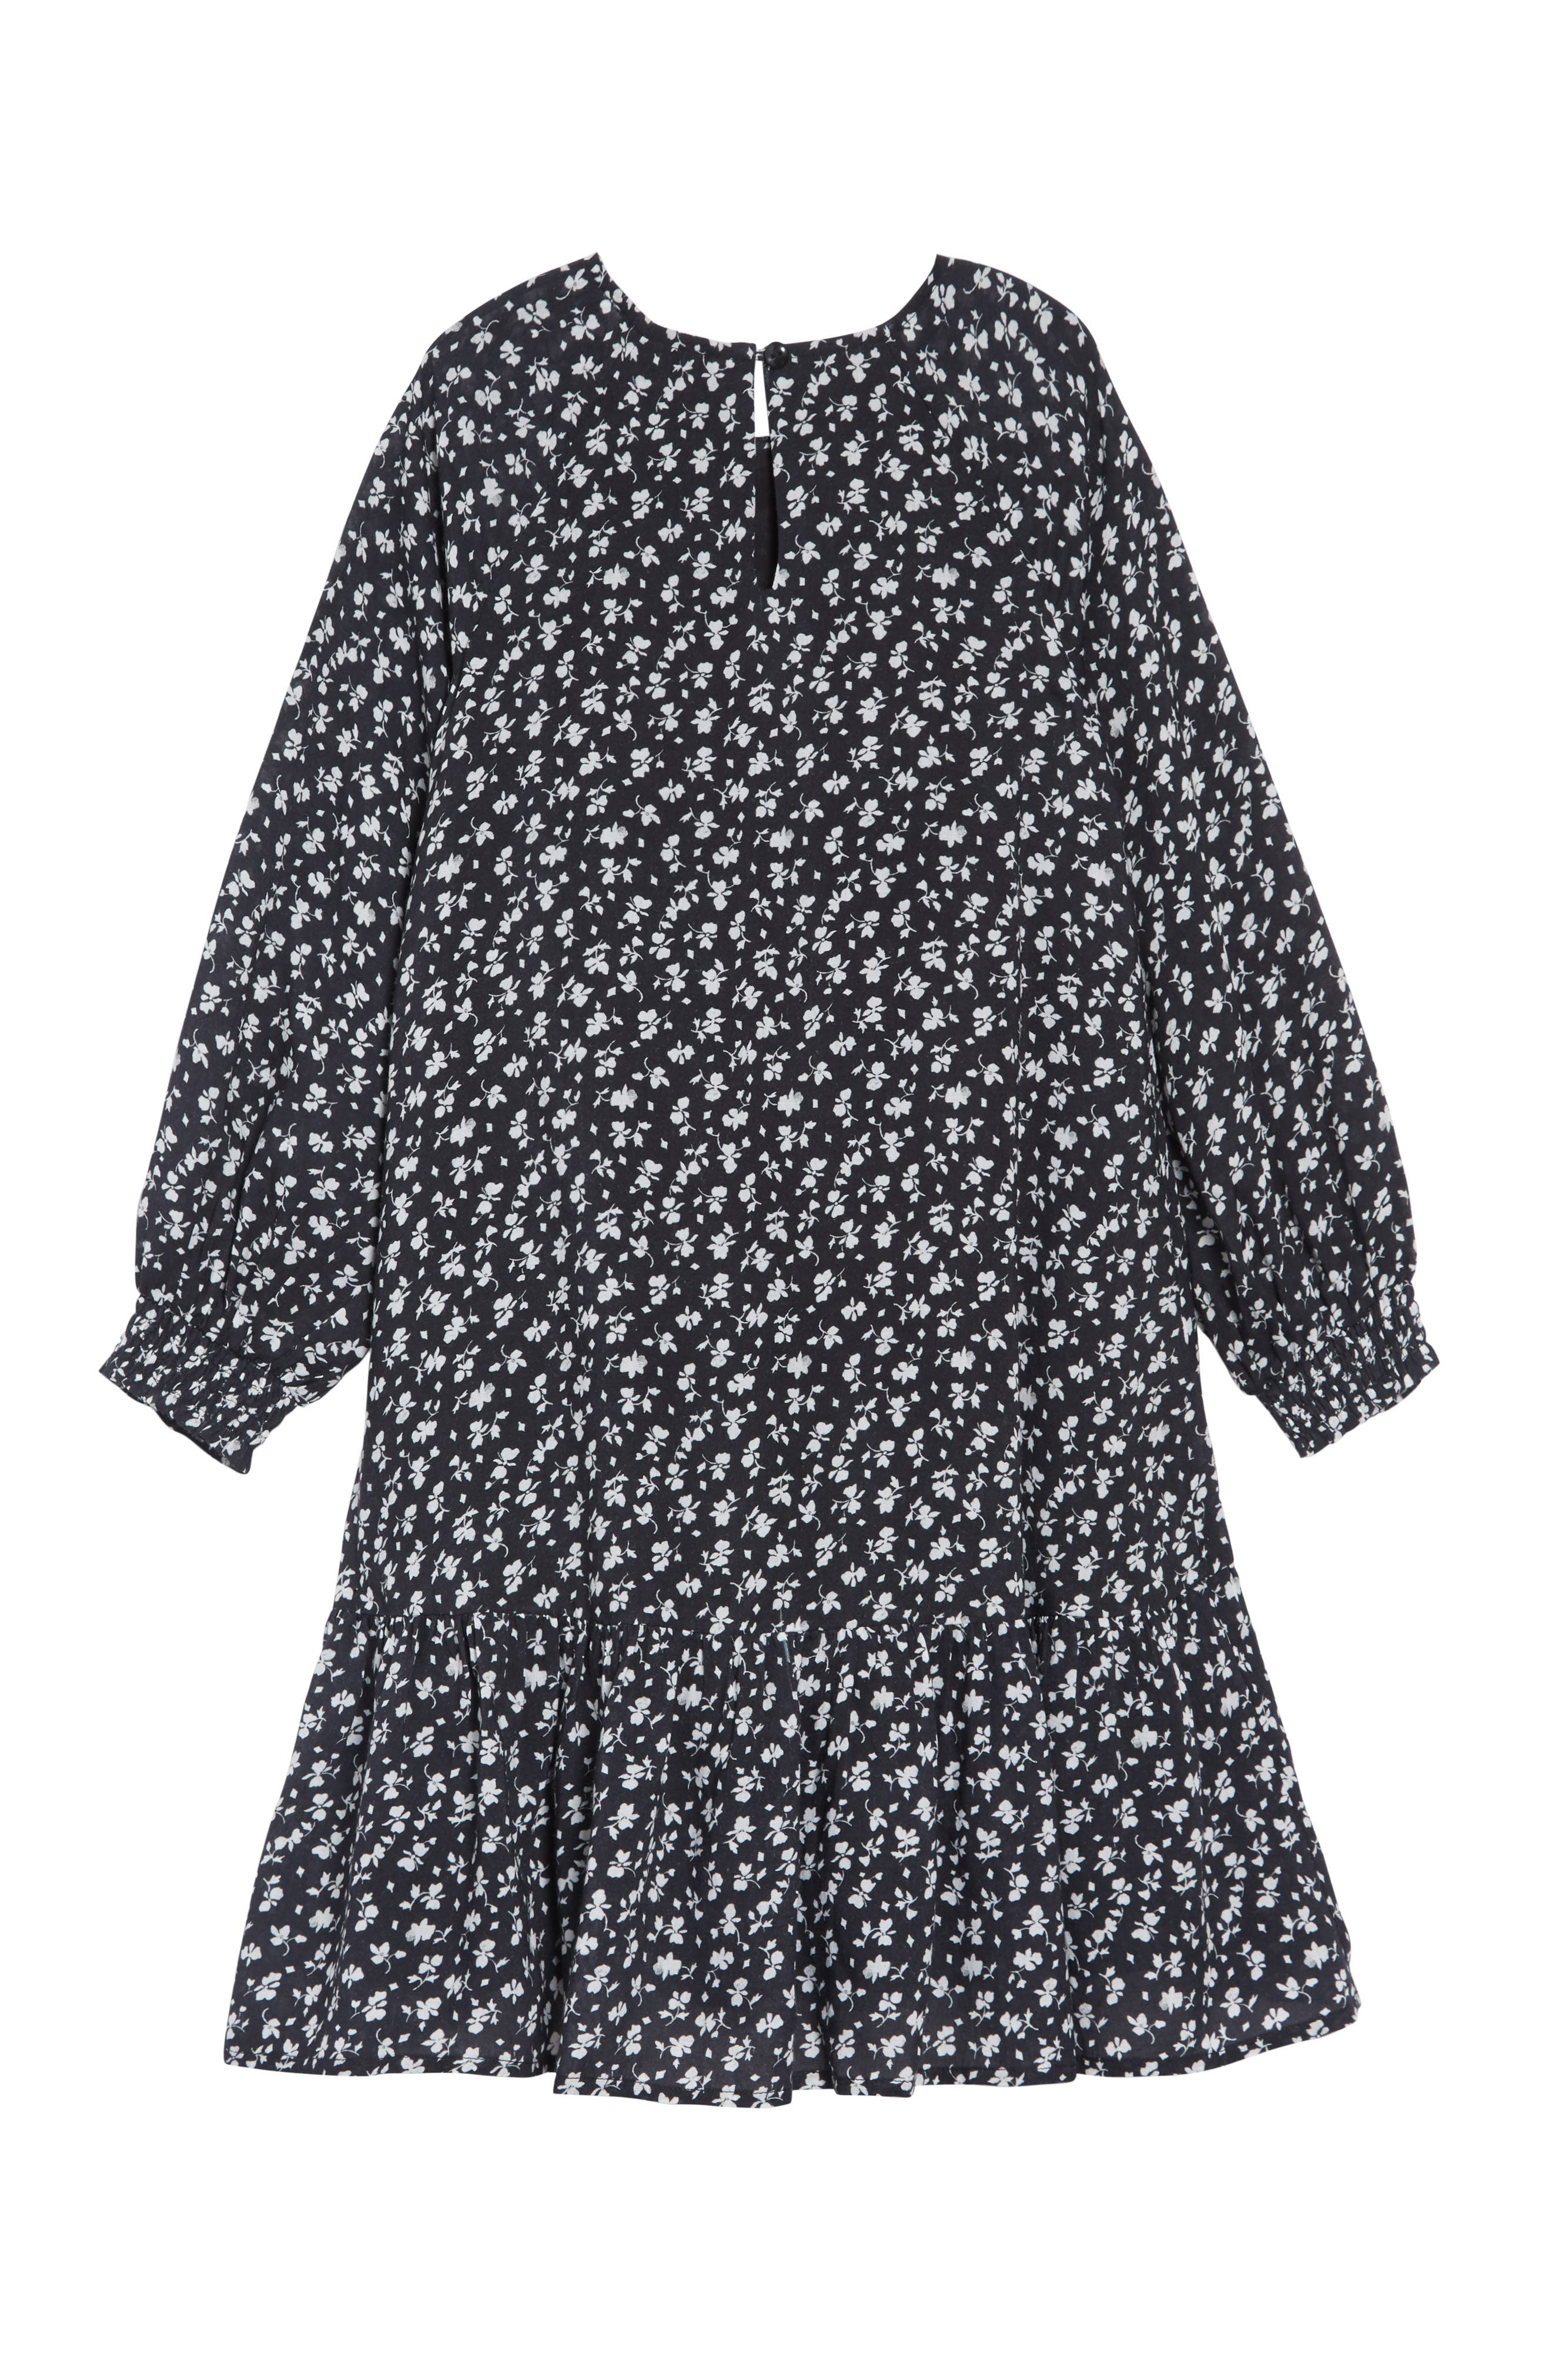 SOMETHING NAVY, Ruffle High/Low Dress, Alternate thumbnail 3, color, BLACK VINTAGE FLORAL